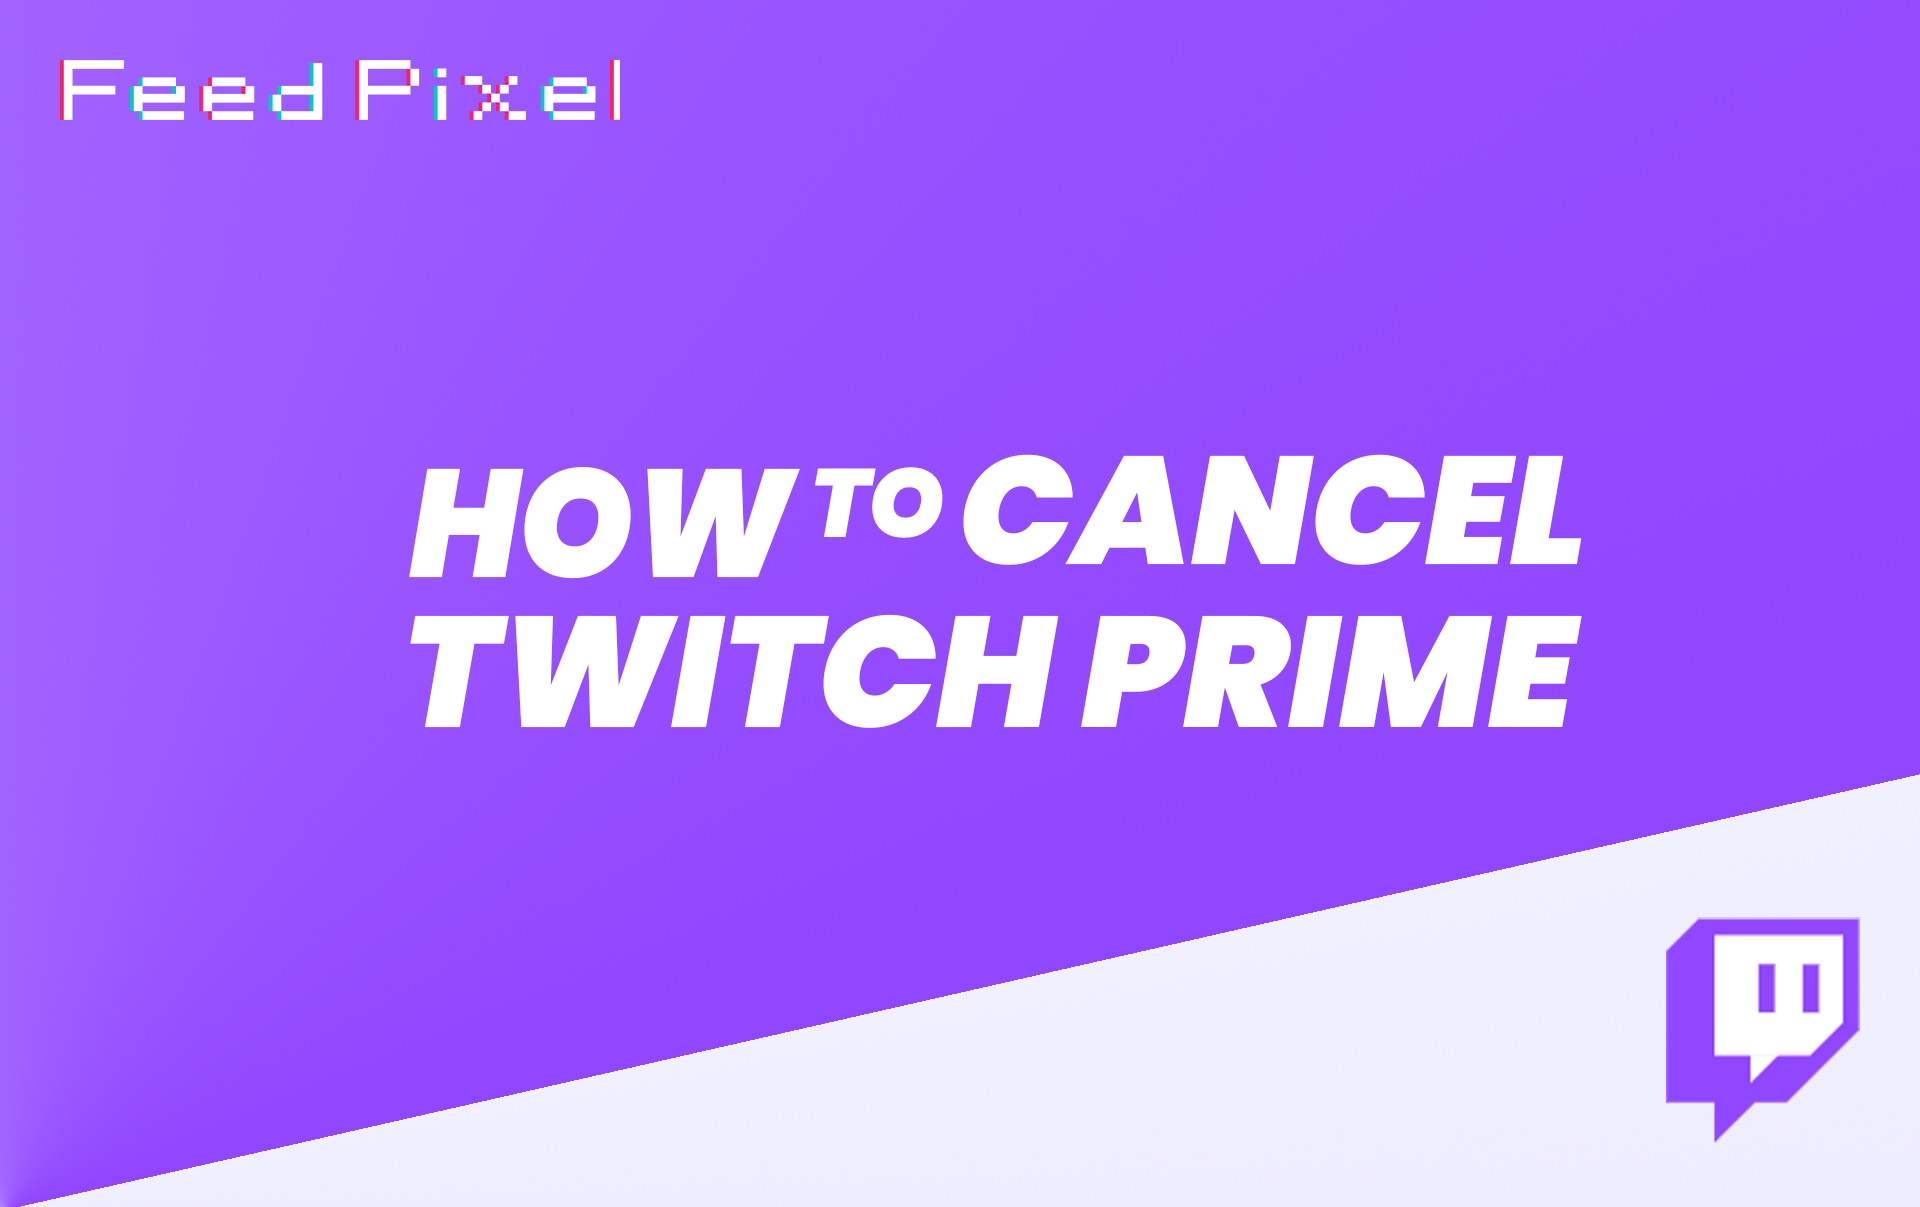 How To Cancel Twitch Prime?